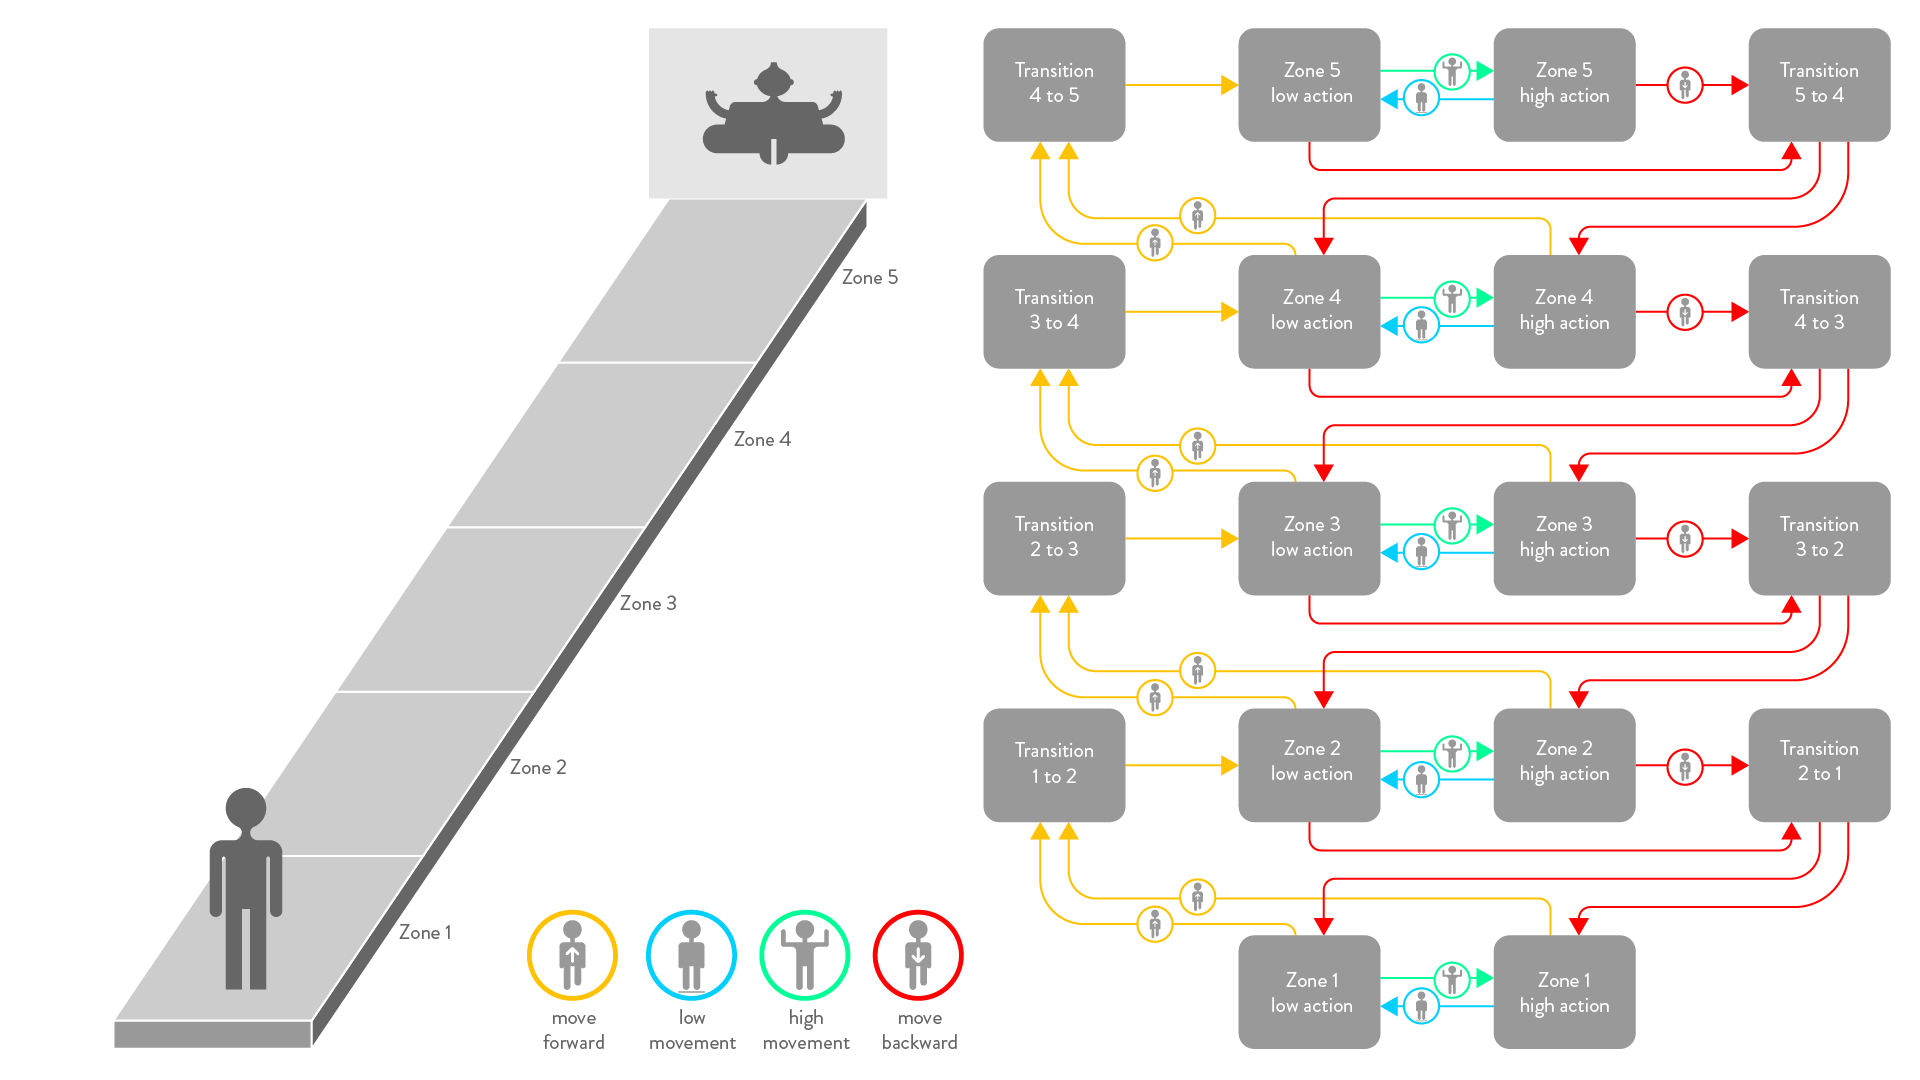 This diagram depicts the flow from one animation to the next depending on user actions. You can cross reference the labels on the chart to the animations to the left.